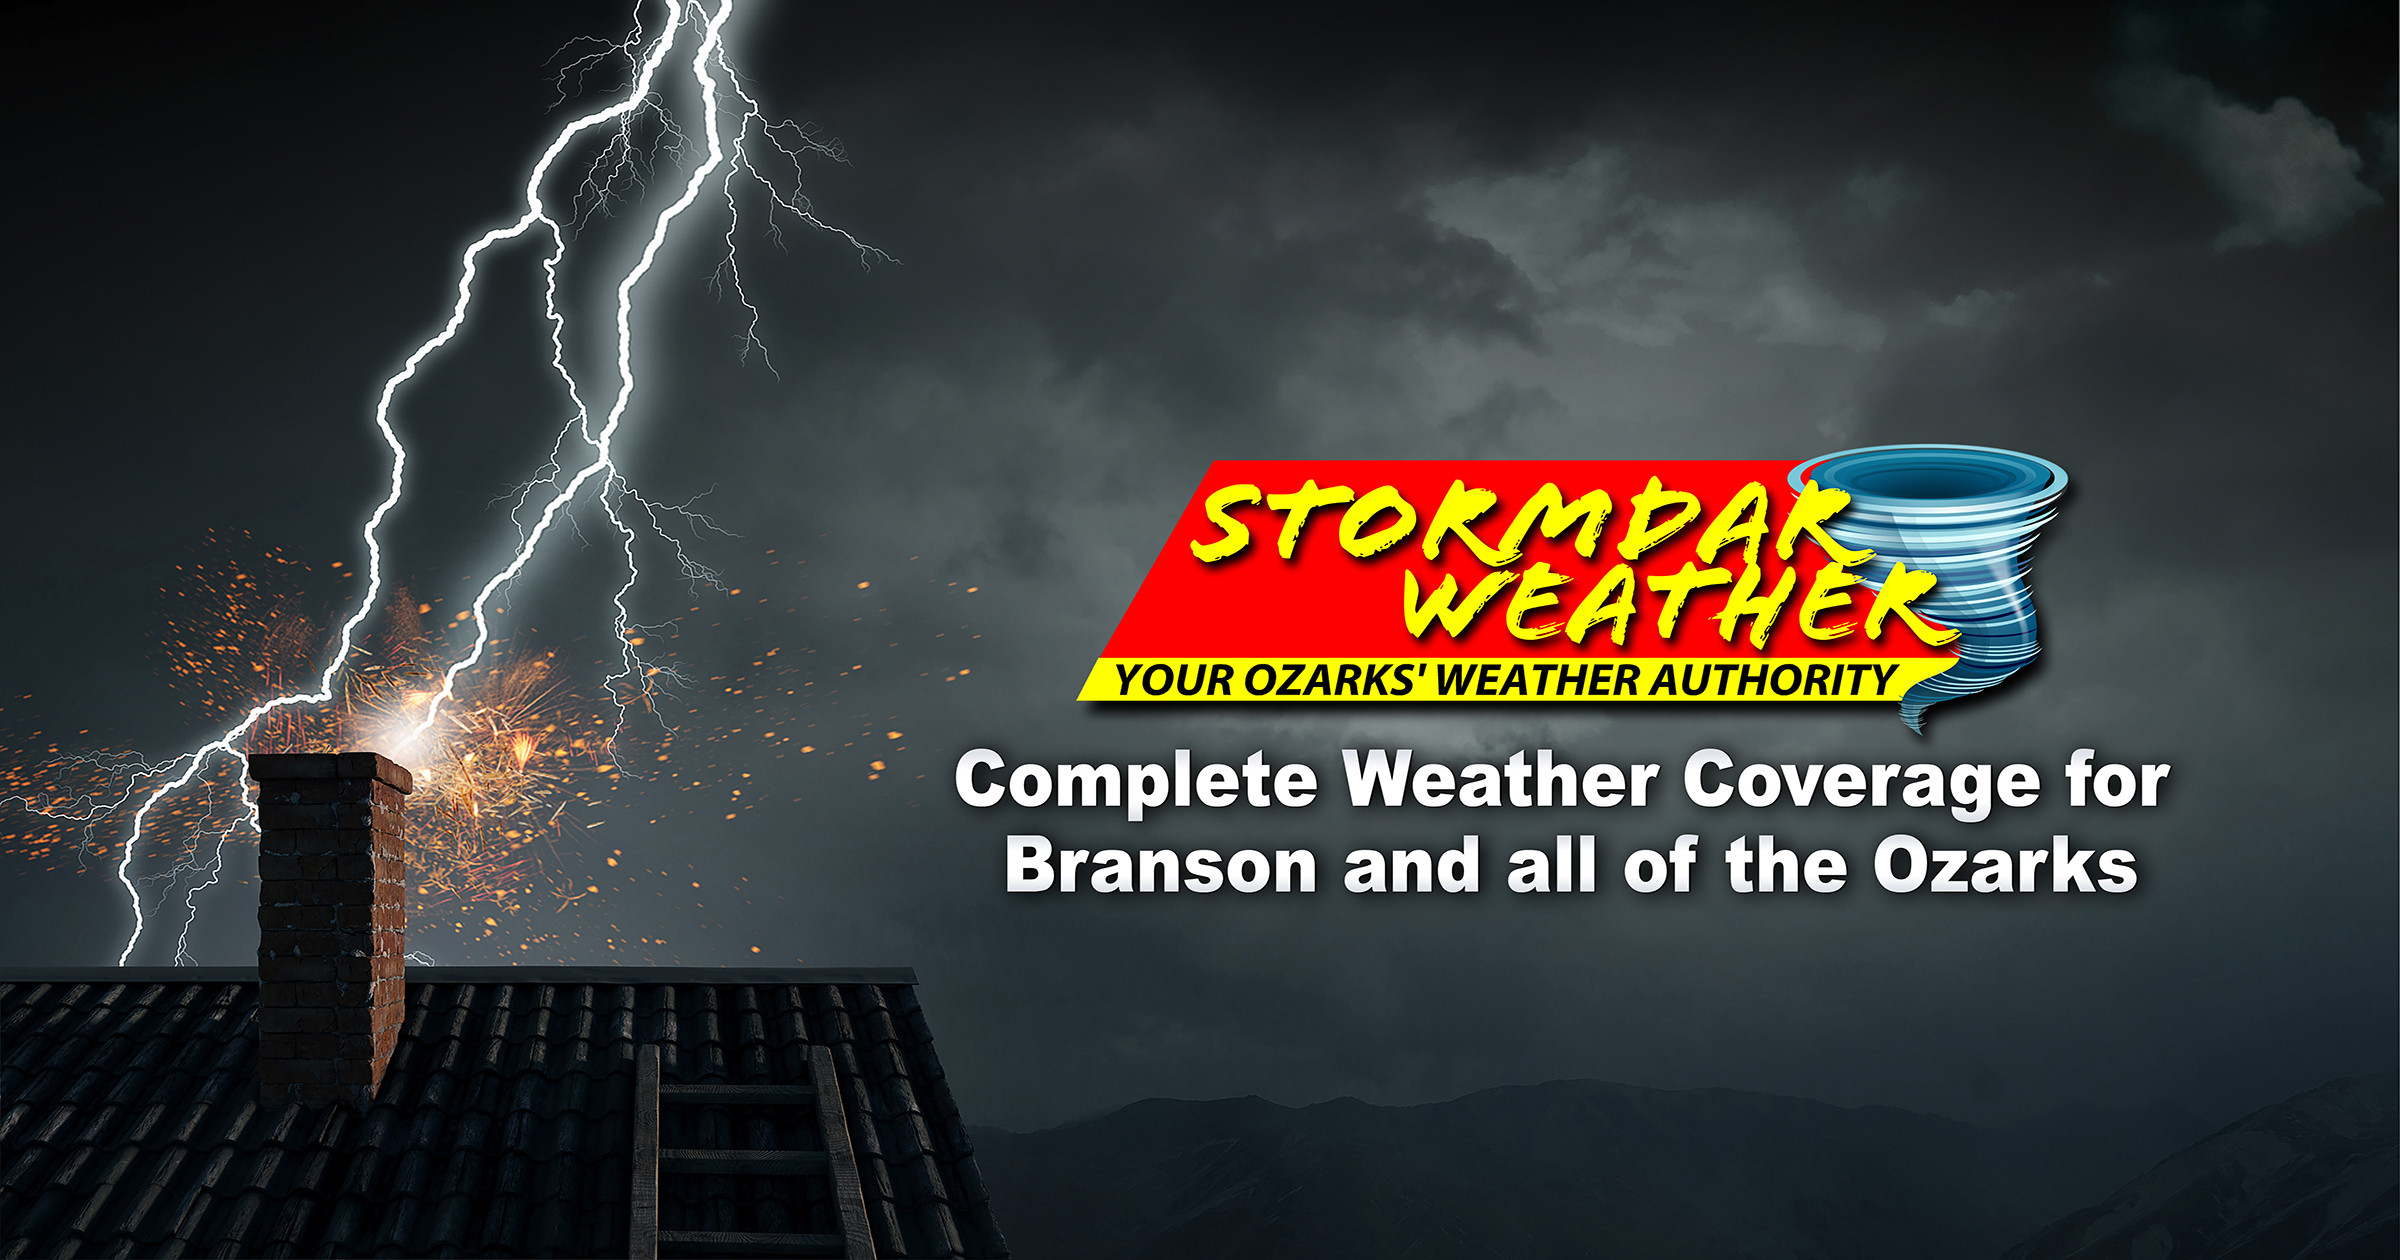 ABOUT US | Stormdar Weather | Branson, Missouri Weather Forecast